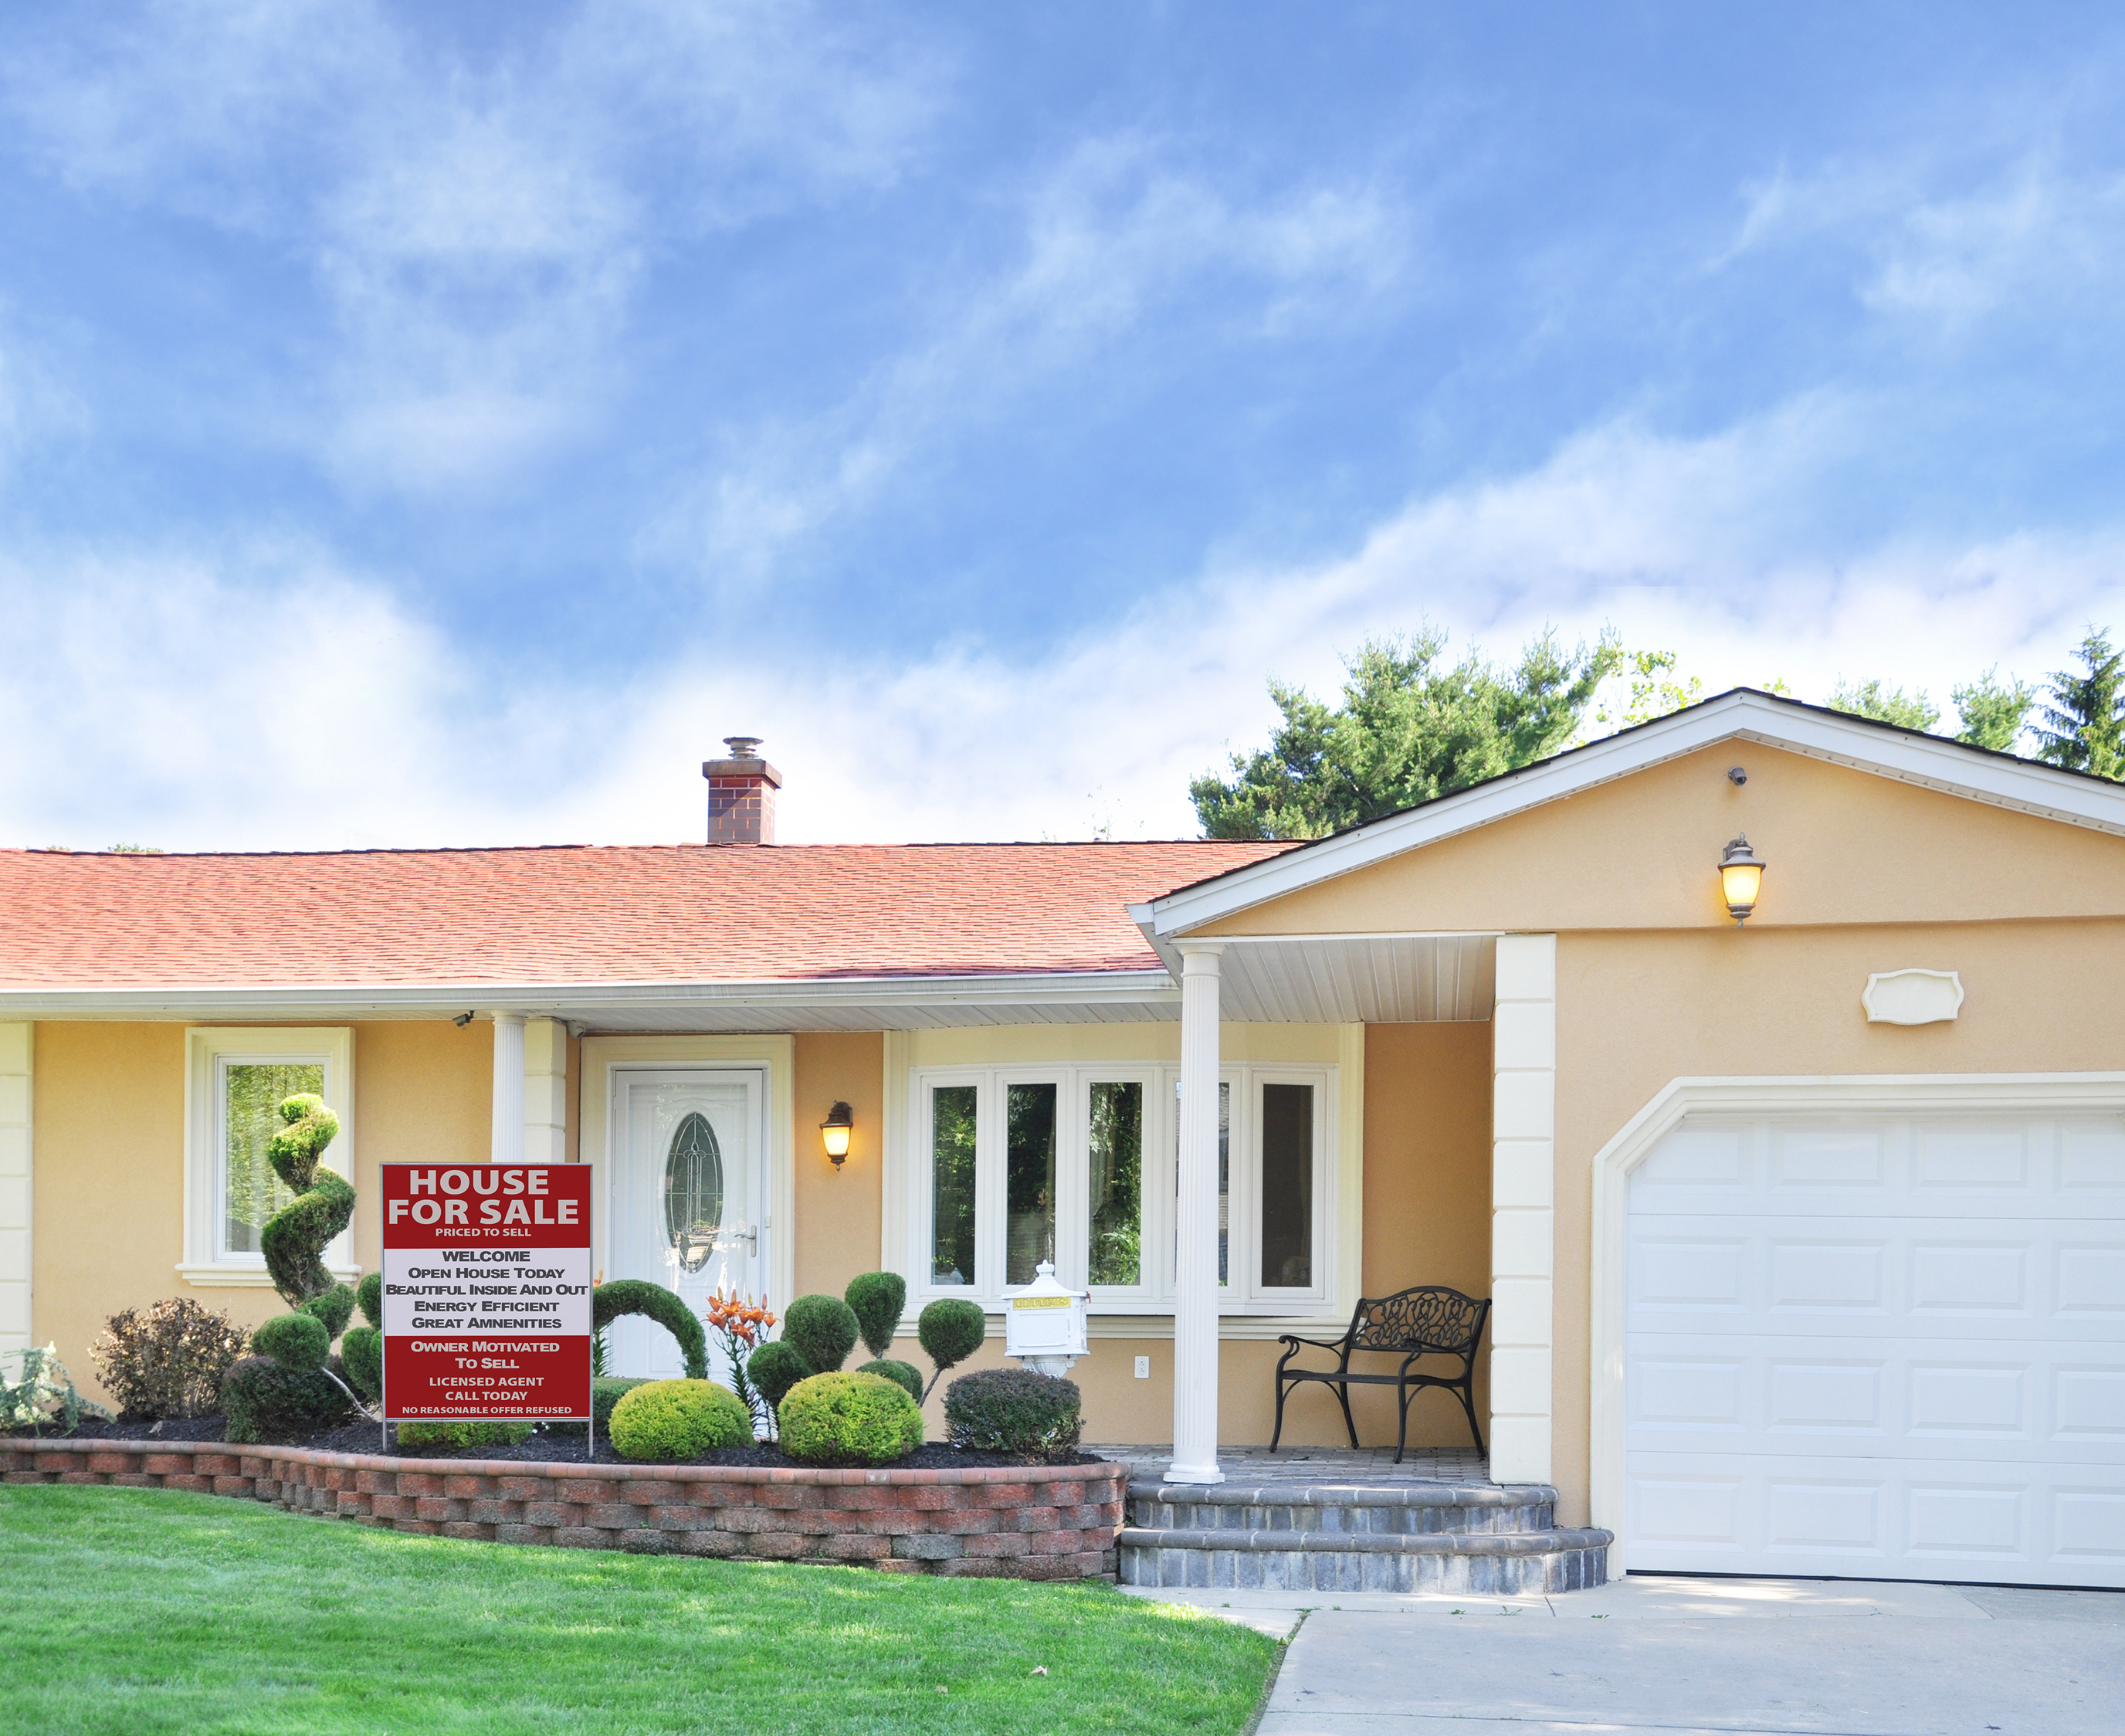 The Ron Turner Real Estate Group image 2